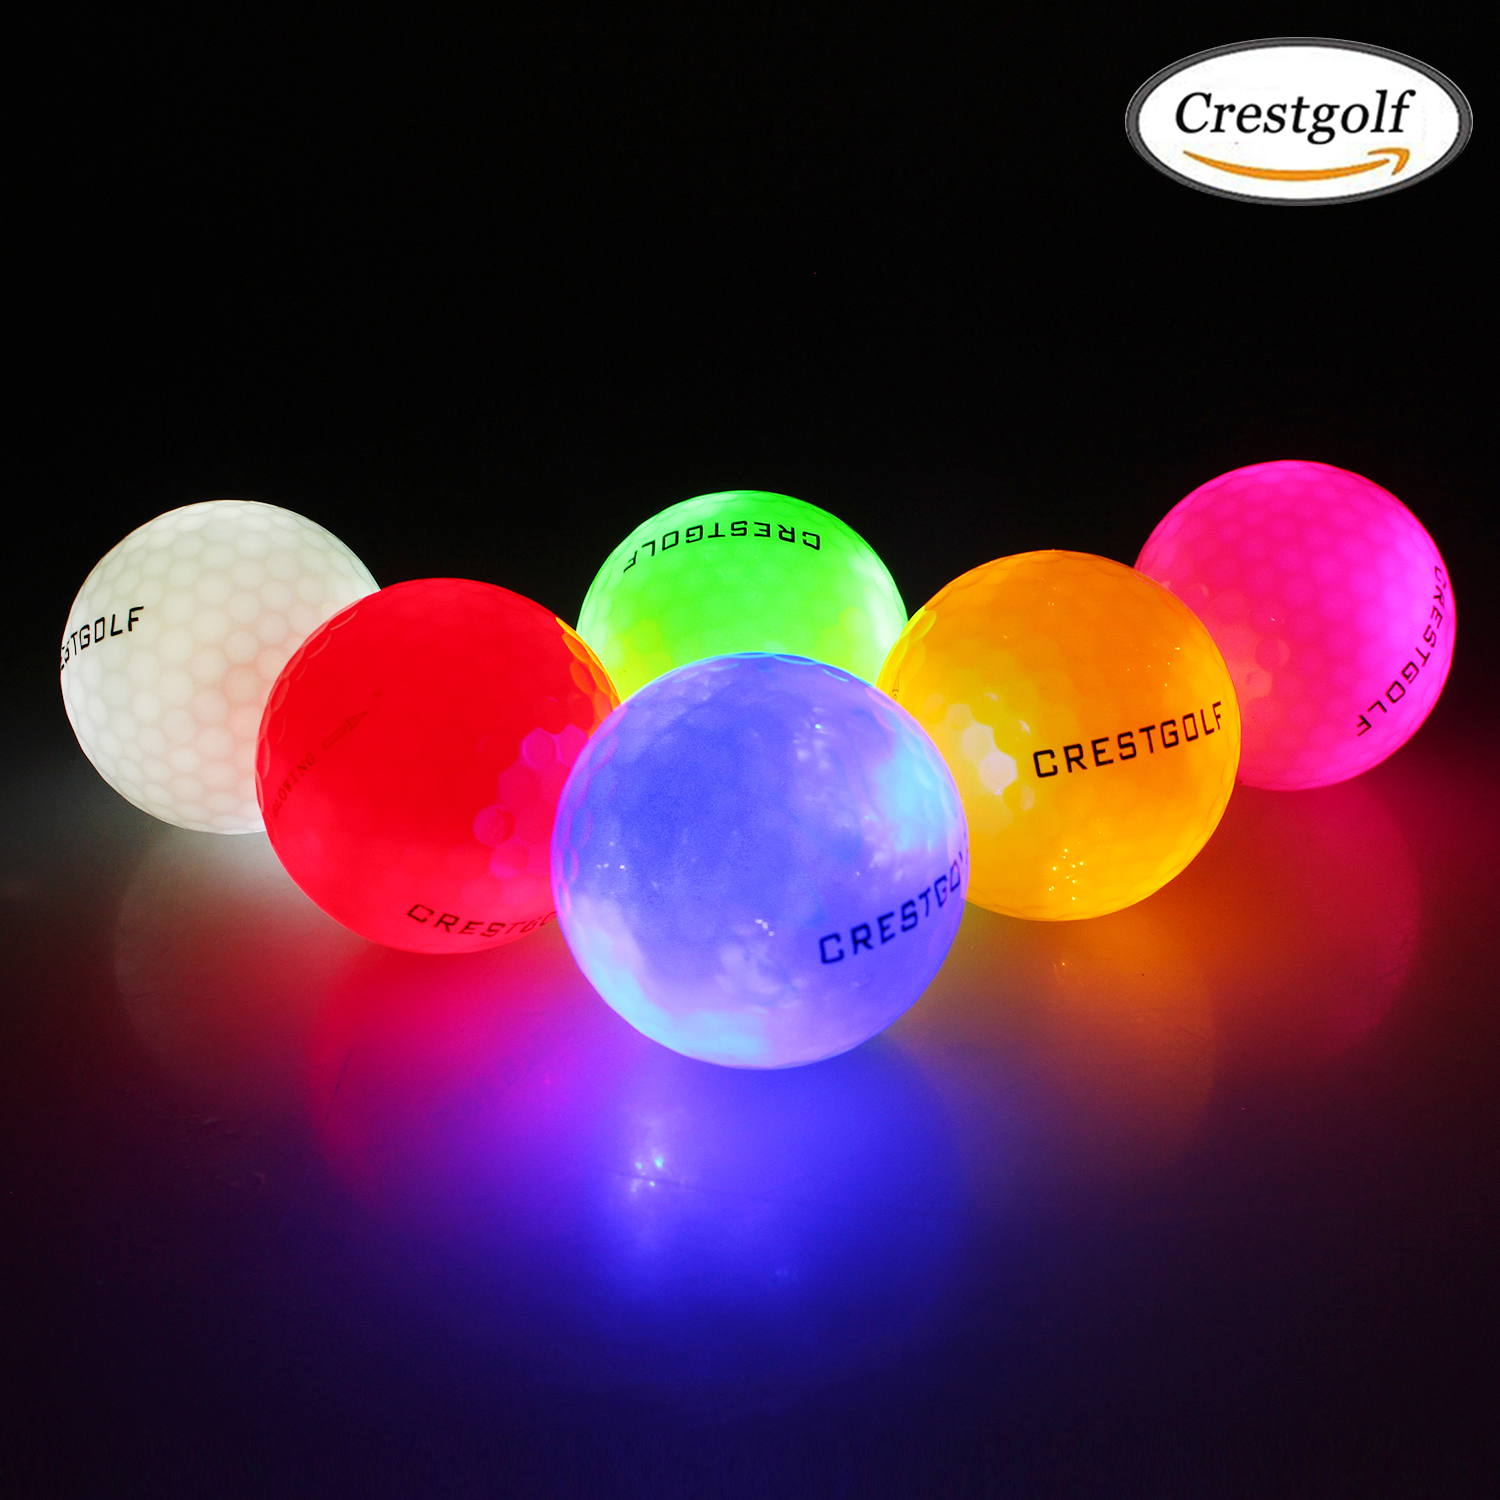 CRESTGOLF Waterproof Led Golf Balls 4 pcs/pack for Night Training High Hardness Material for Golf Practice Balls 2019 The Newest 1